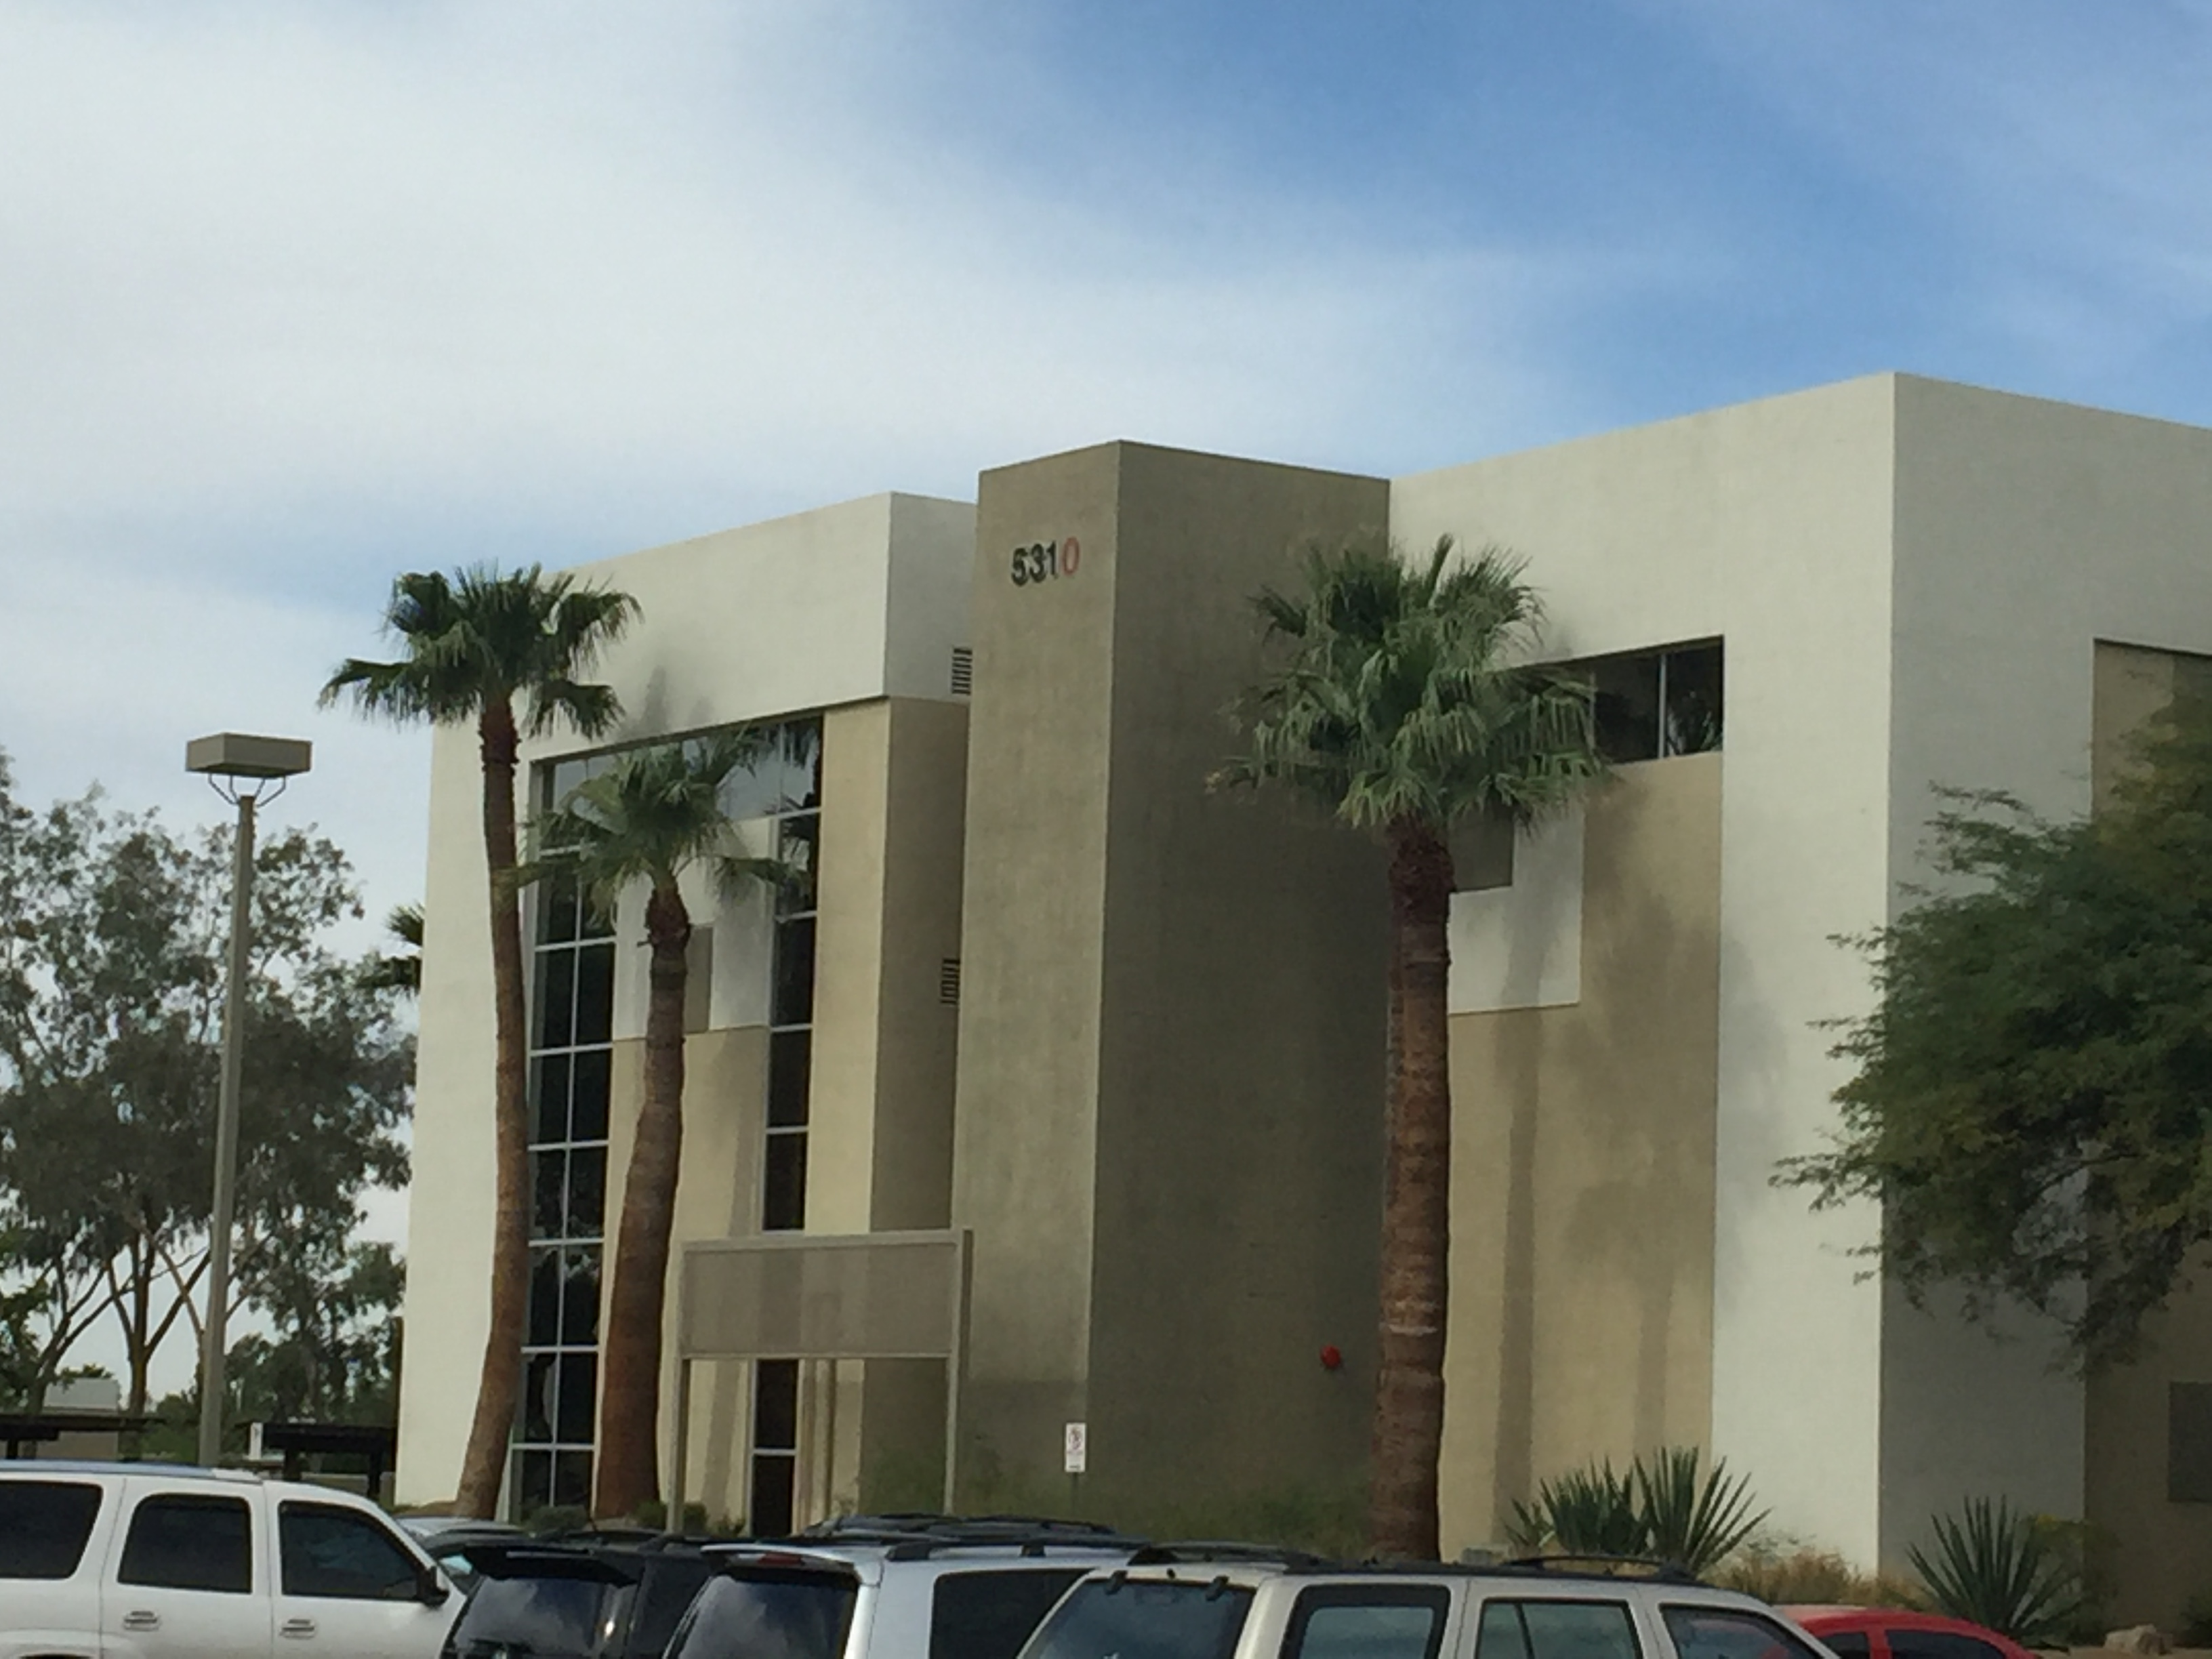 Feldhake & Associates Office Building, Glendale Arizona